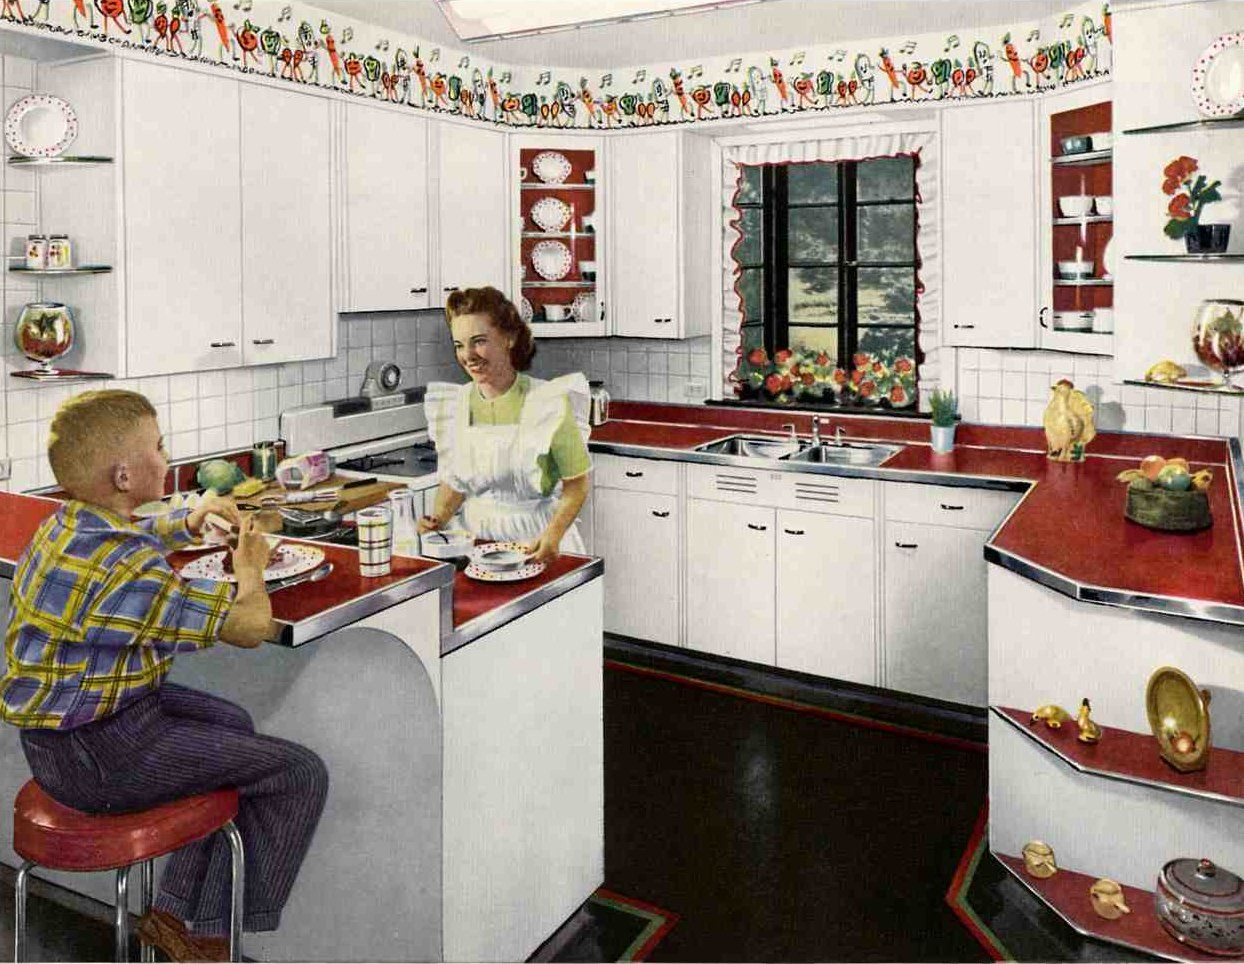 red linoleum counters... but those dancing veggies around the ceiling rule ) & 1940u0027s kitchens | Pinterest | Ceilings Kitchens and 1950s kitchen